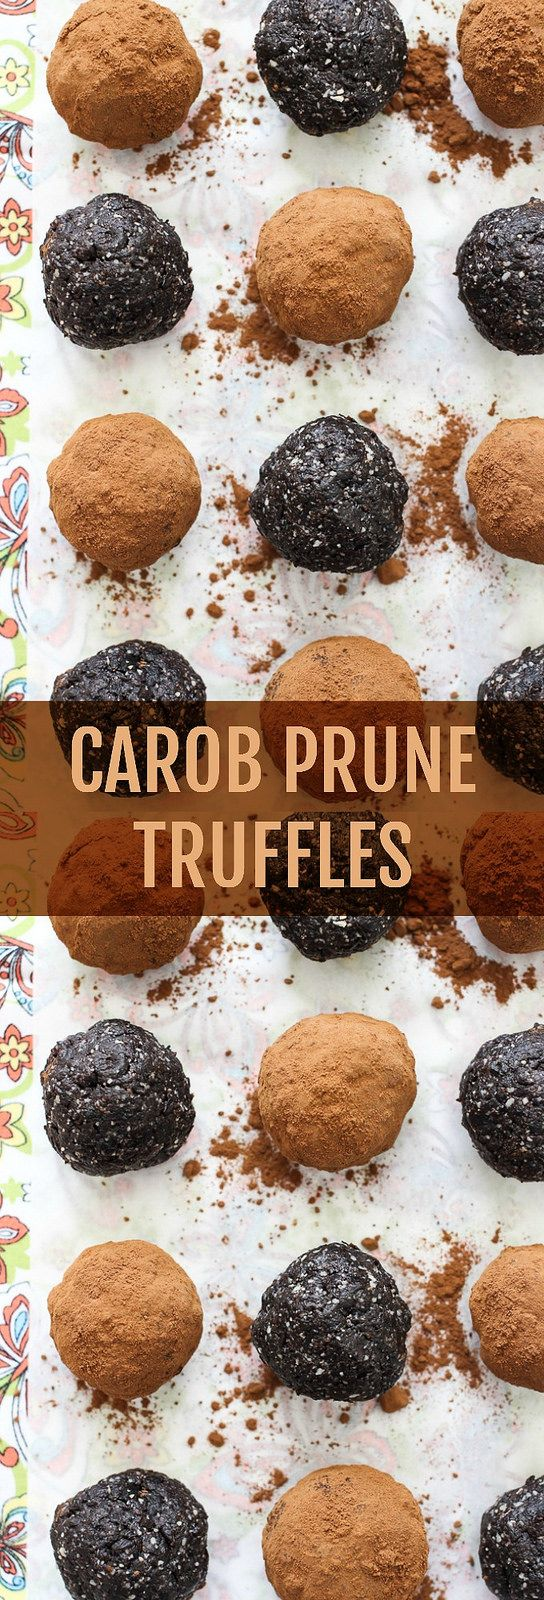 Carob Prune Truffles Recipe - no refined sugar added. Naturally sweetened with carob powder and prunes. Only 5 ingredients.